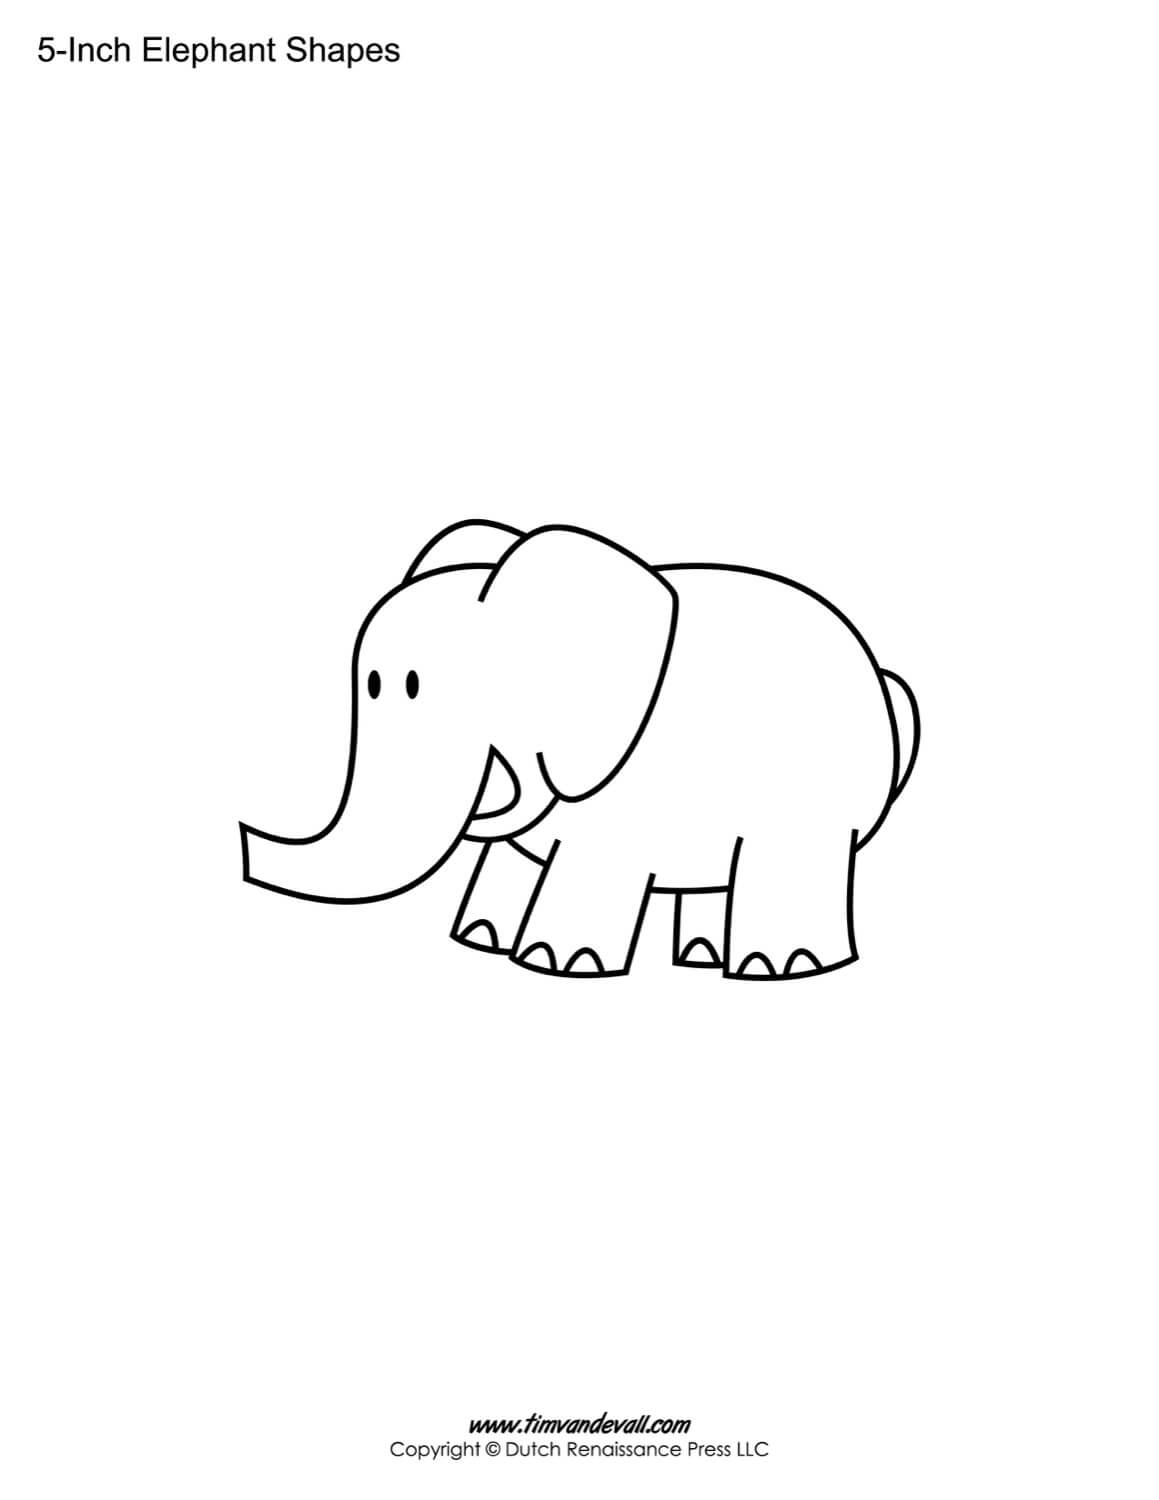 Printable Elephant Templates / Elephant Shapes For Kids Intended For Blank Elephant Template